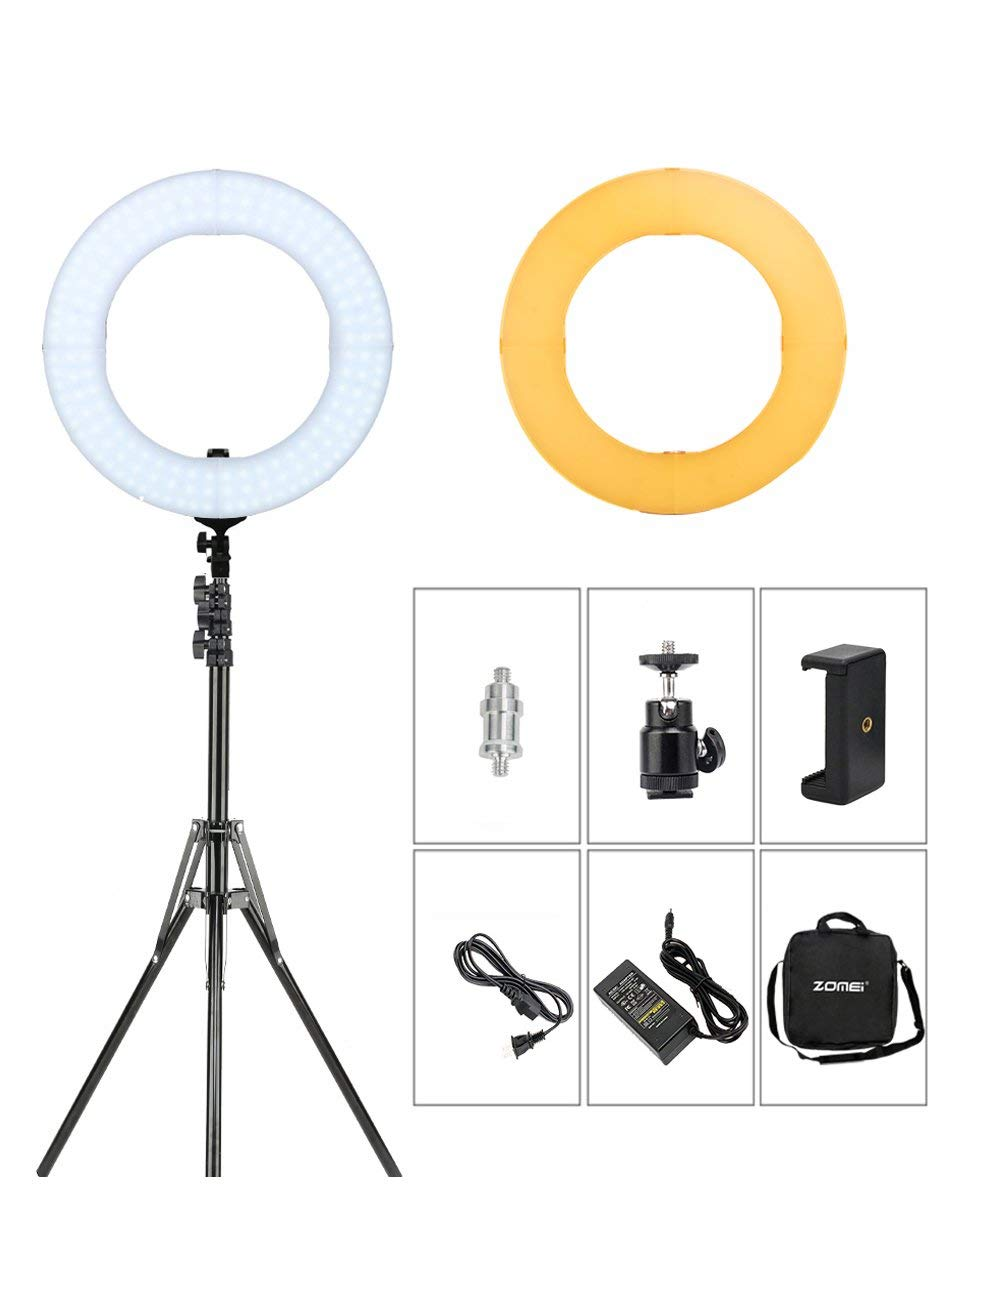 """ZOMEI 14"""" LED Ring Light Dimmable 41W 5500K Photography Lights for Makeup Youtube Videos Photo Shoot Live Streaming With Light Stand and Orange Filters"""